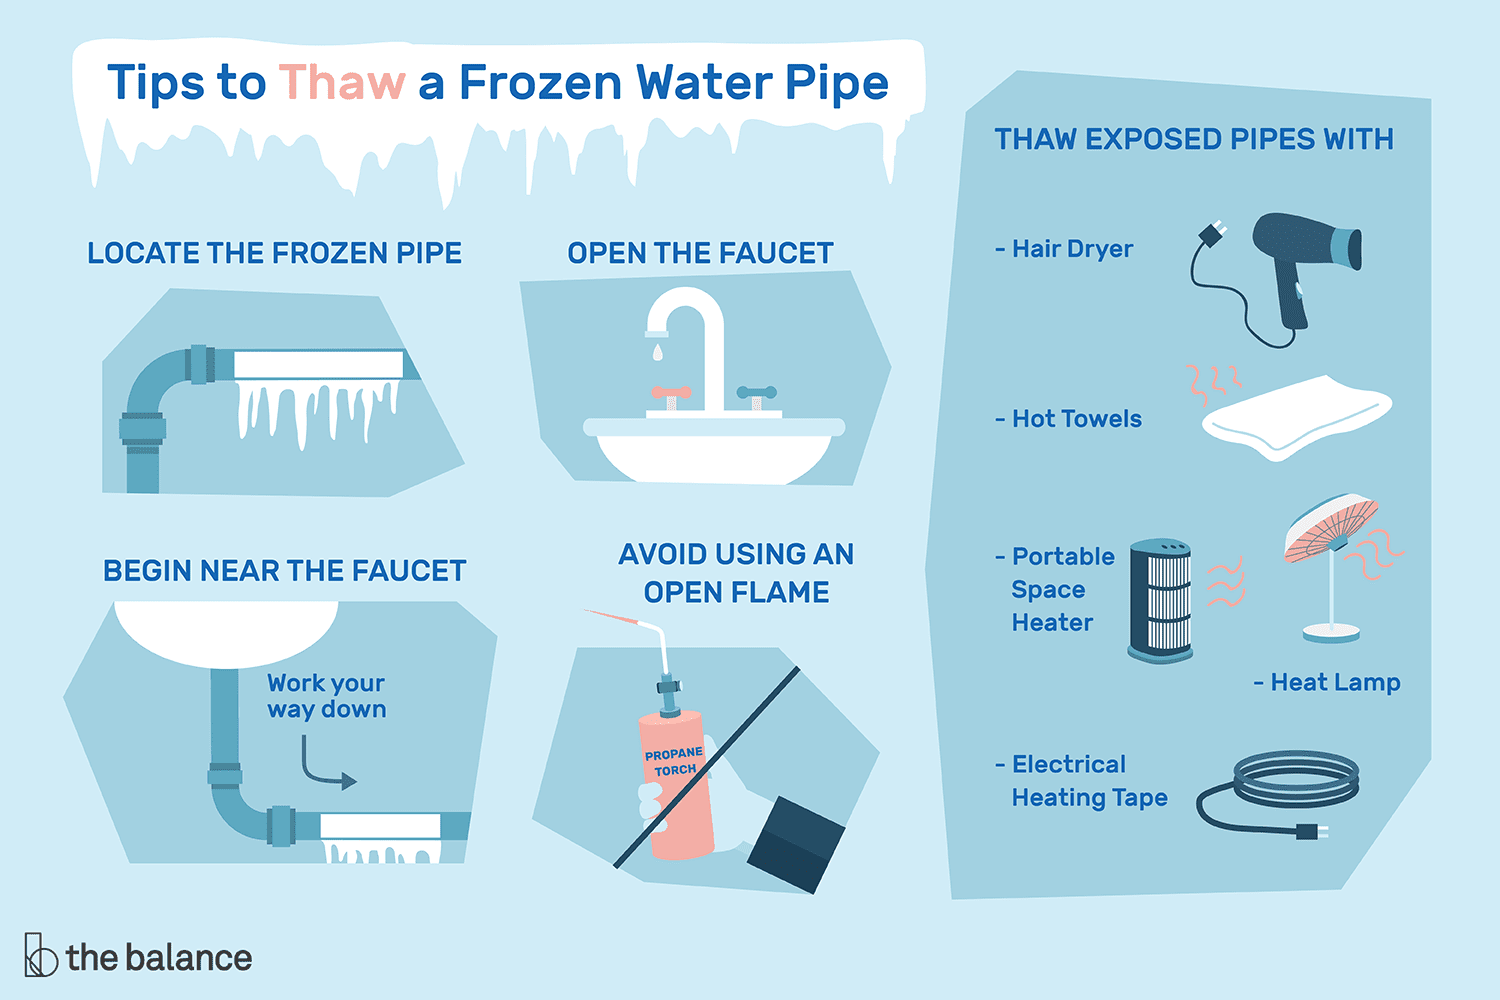 7 Tips For Thawing A Frozen Water Pipe